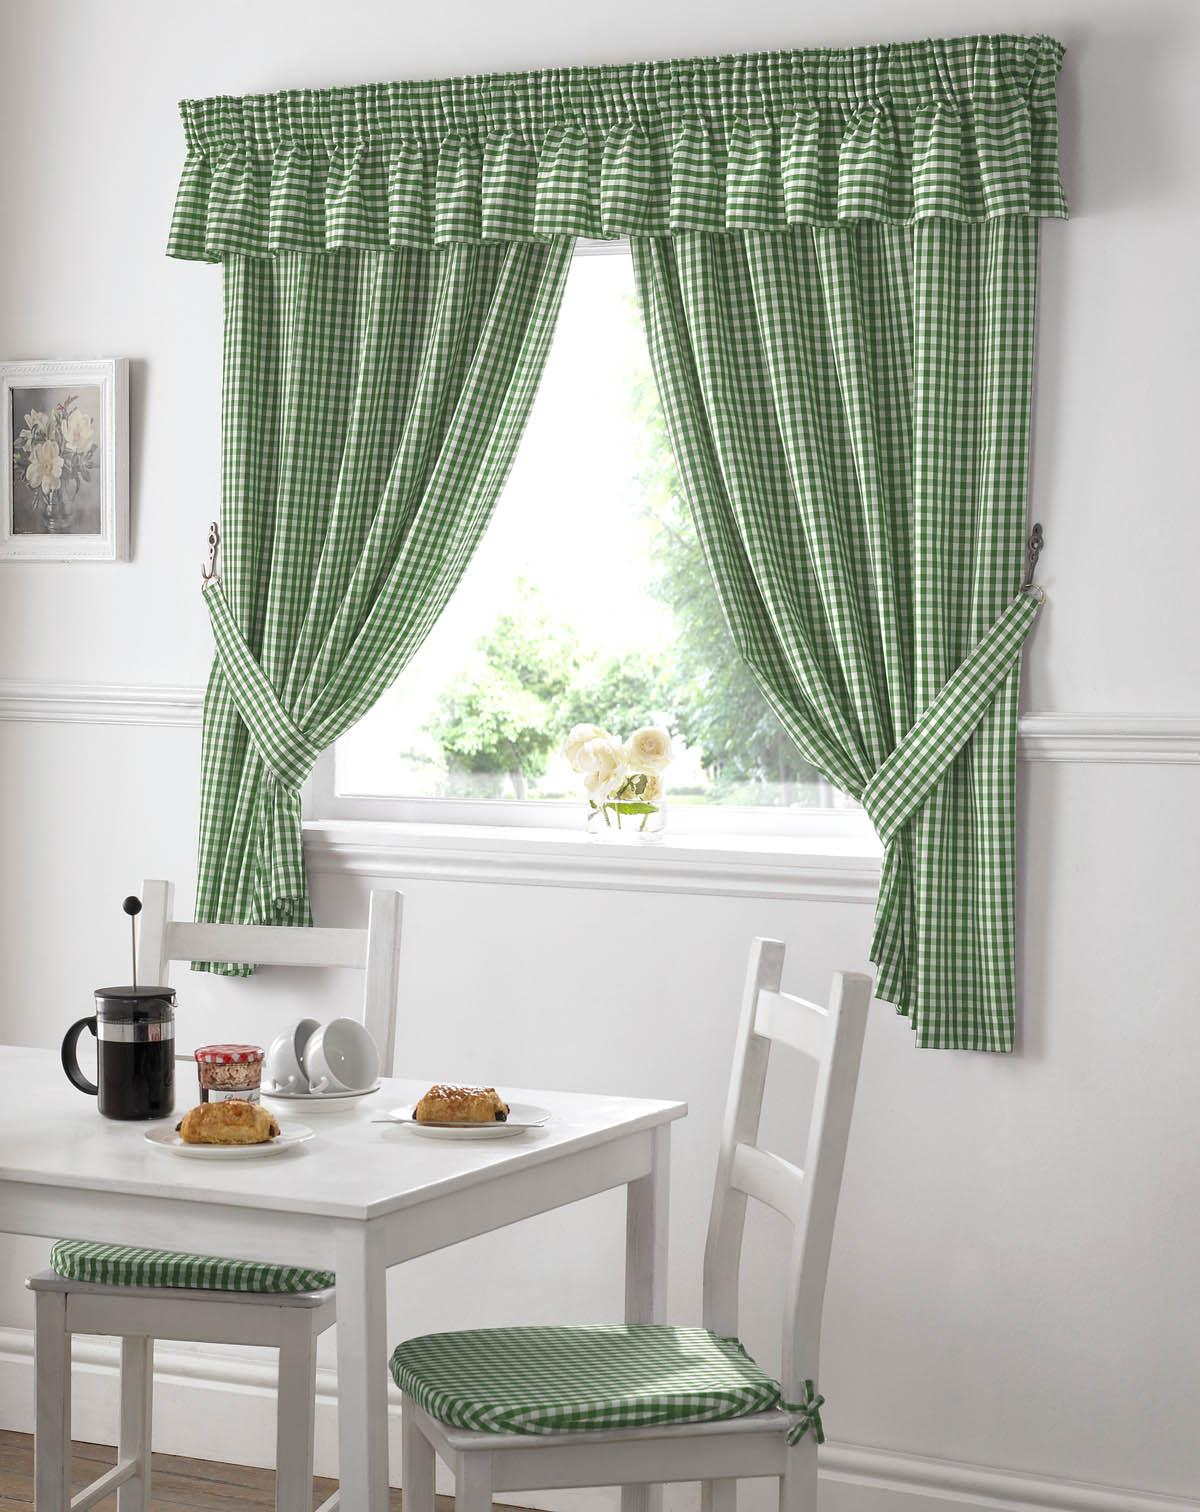 Green Gingham Value Kitchen Curtains